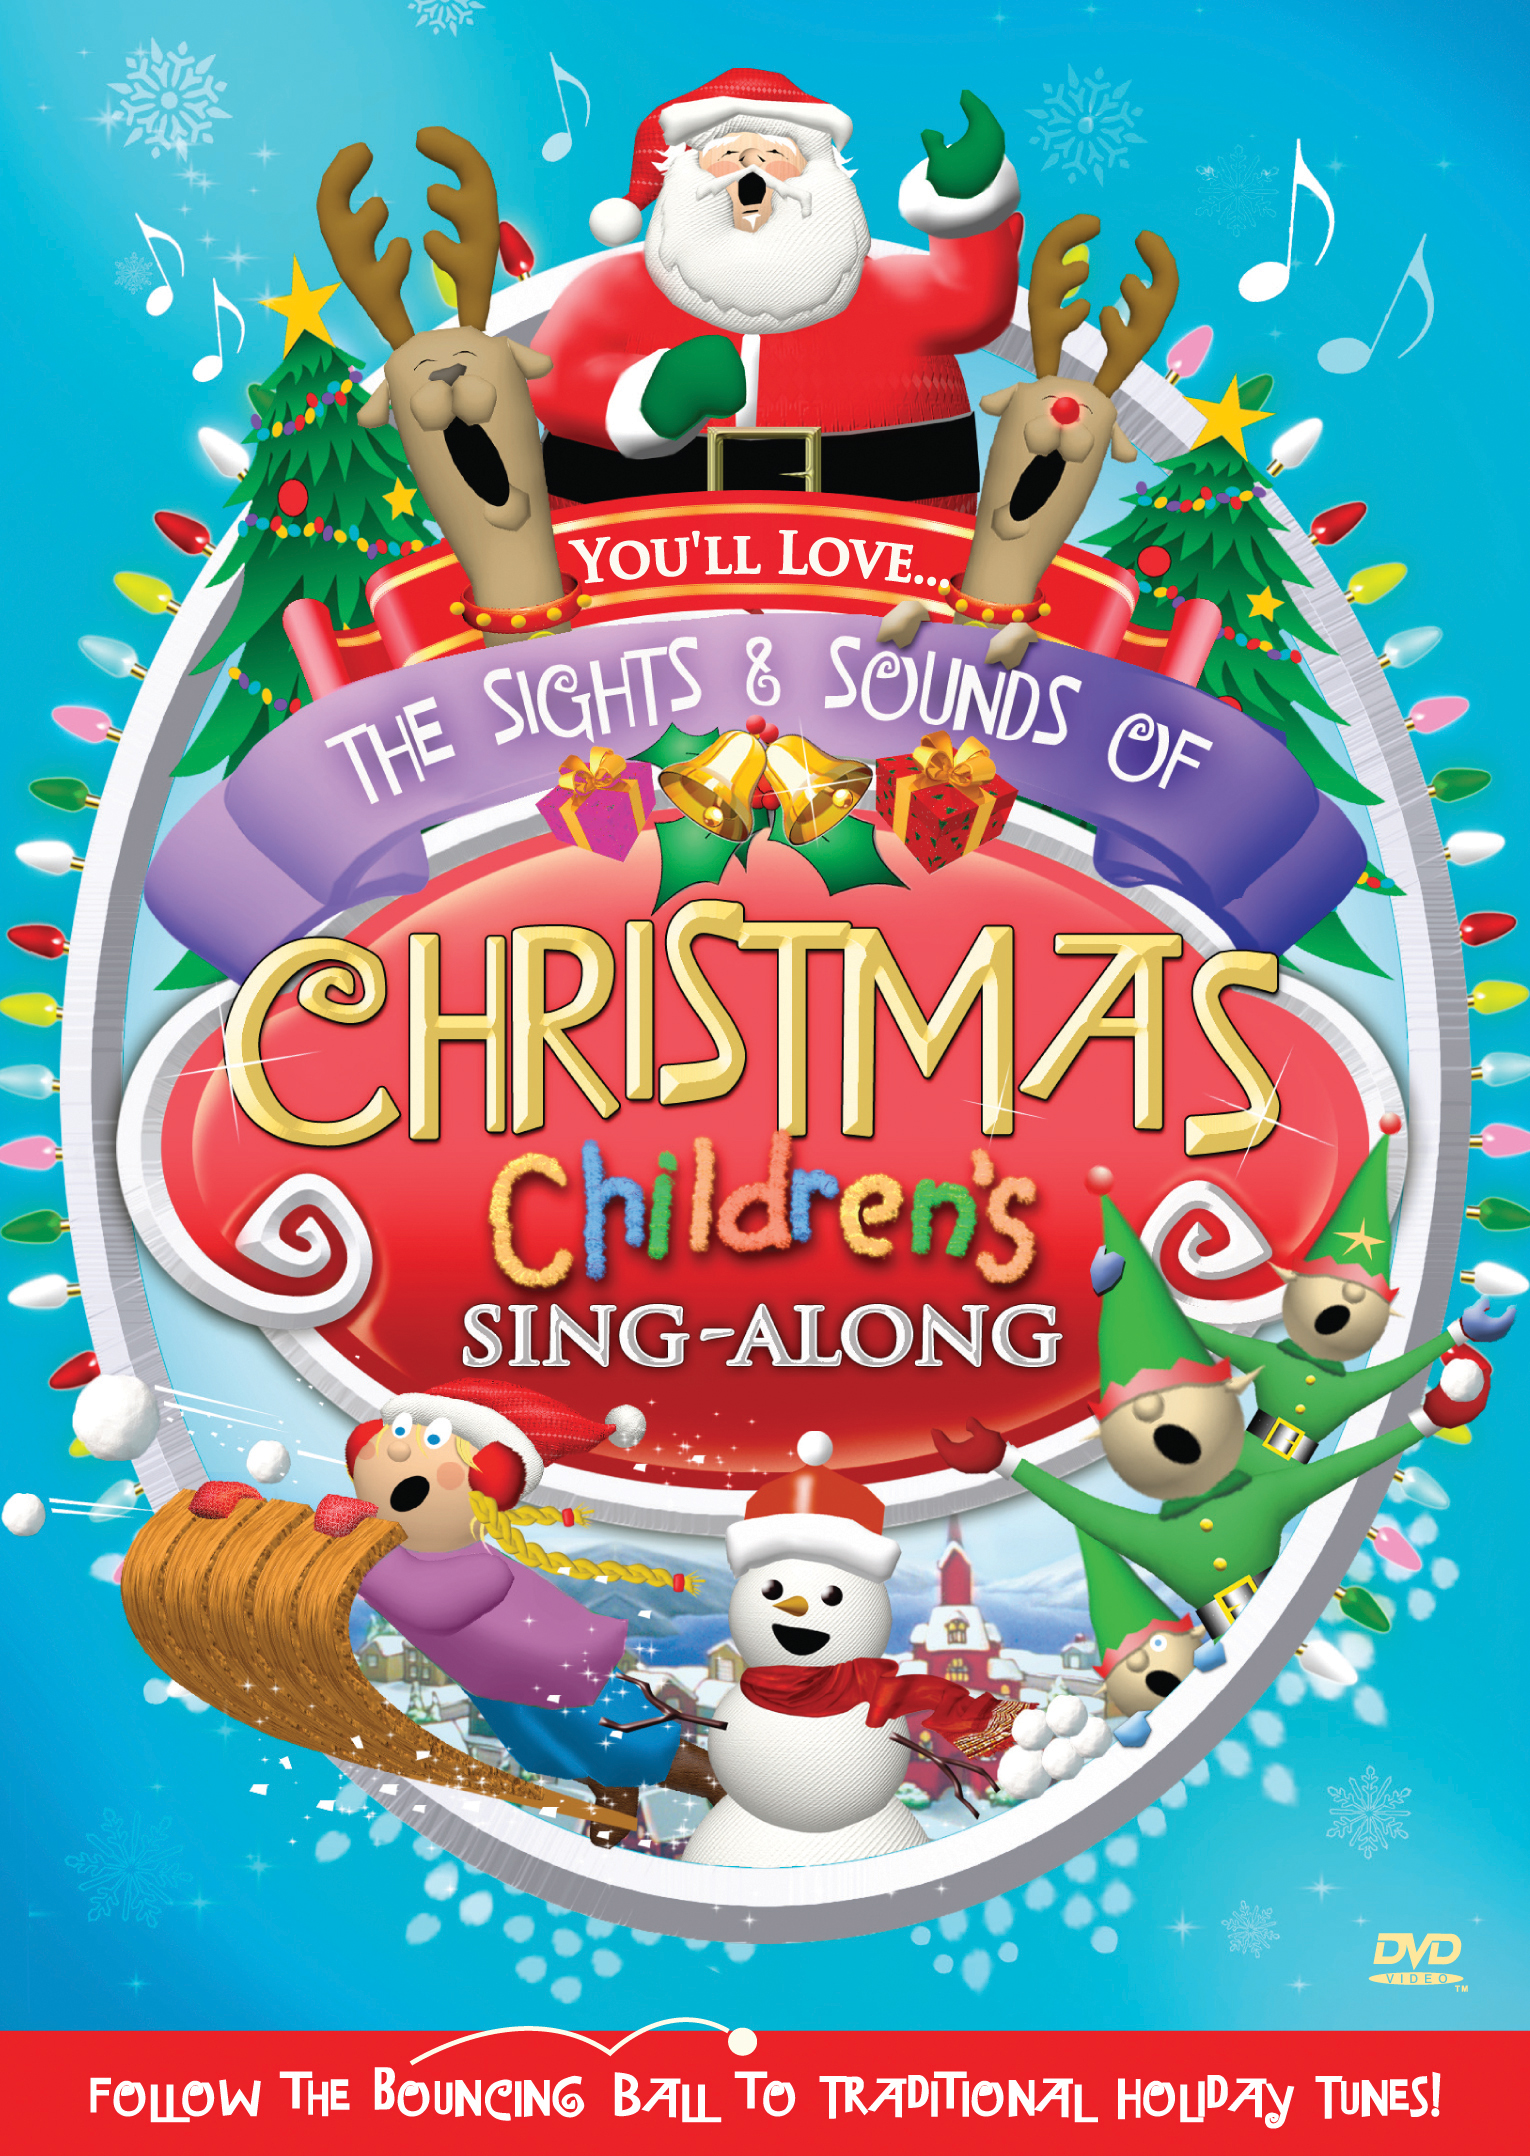 Sights & Sounds of Christmas: Children's Sing-Along